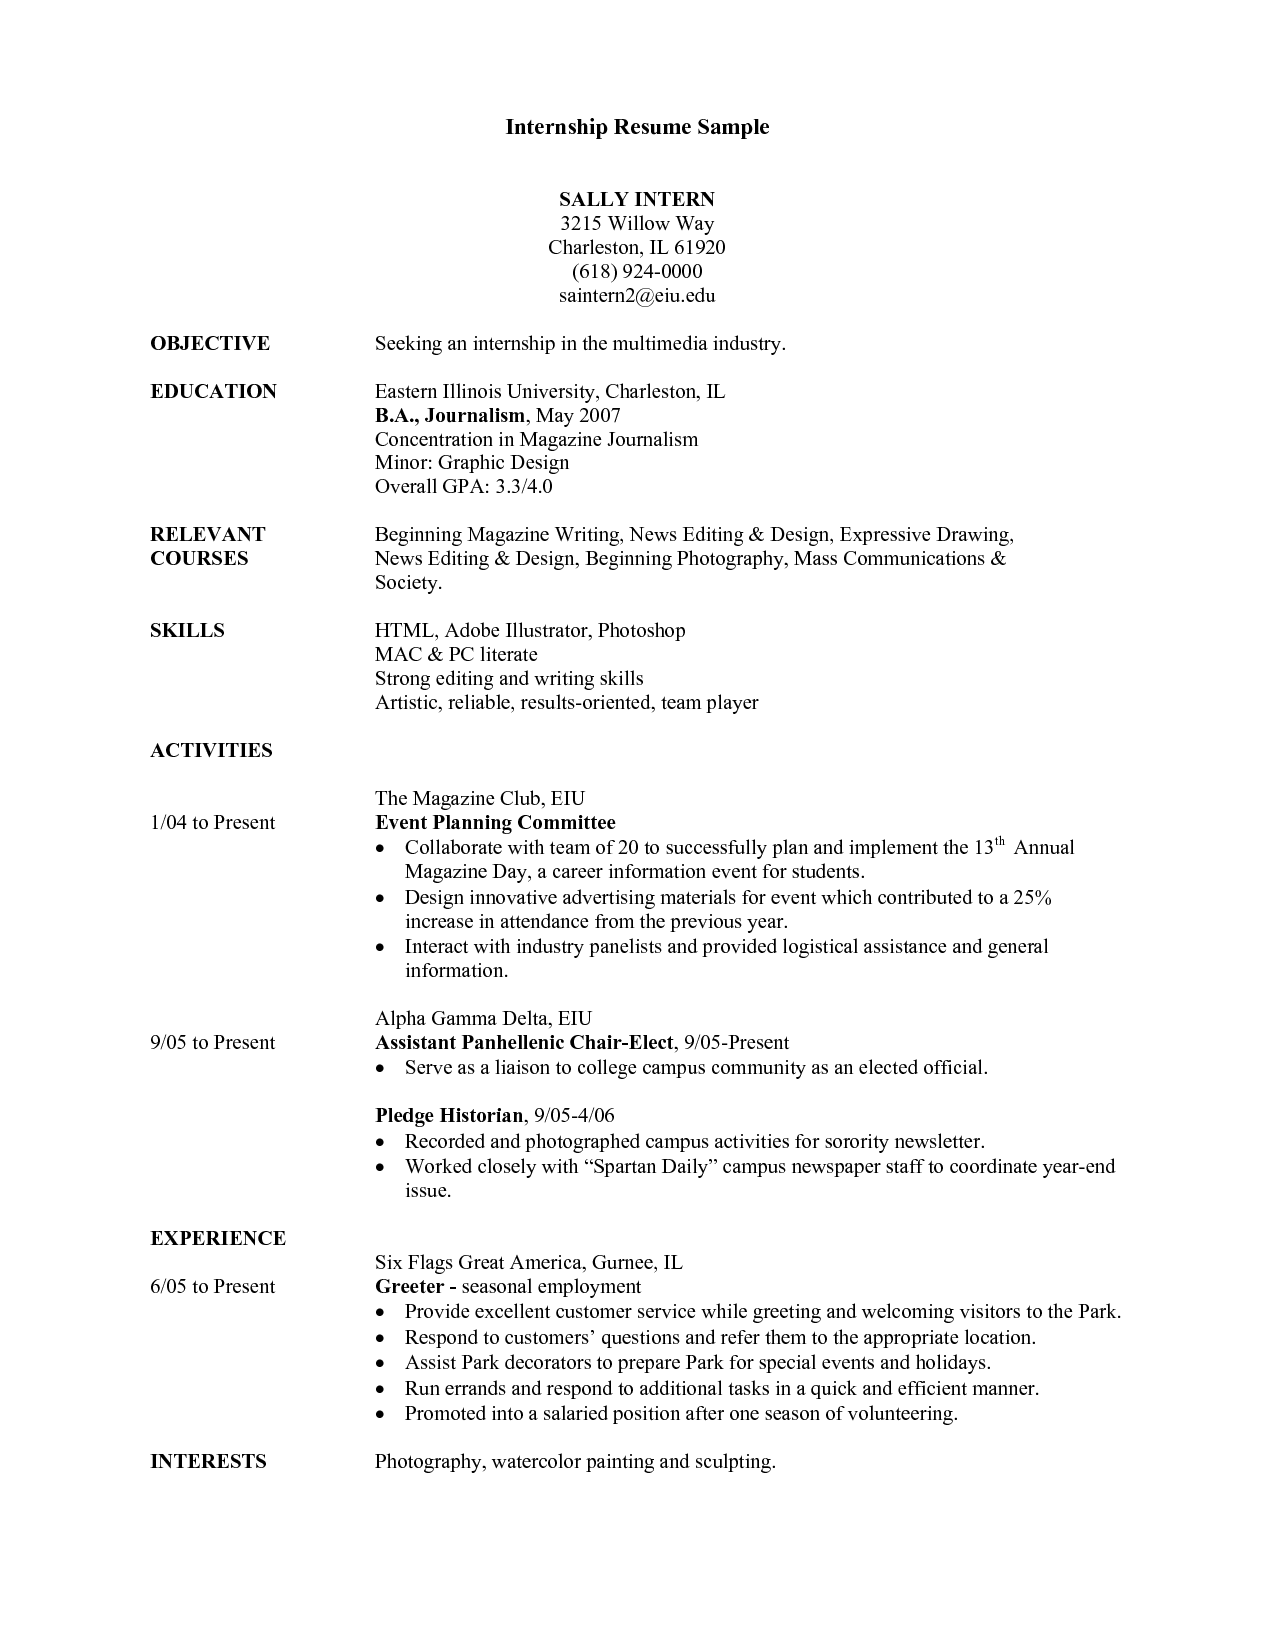 College Student Resume Interesting Student Resume Example Sample College Internship Samples Students